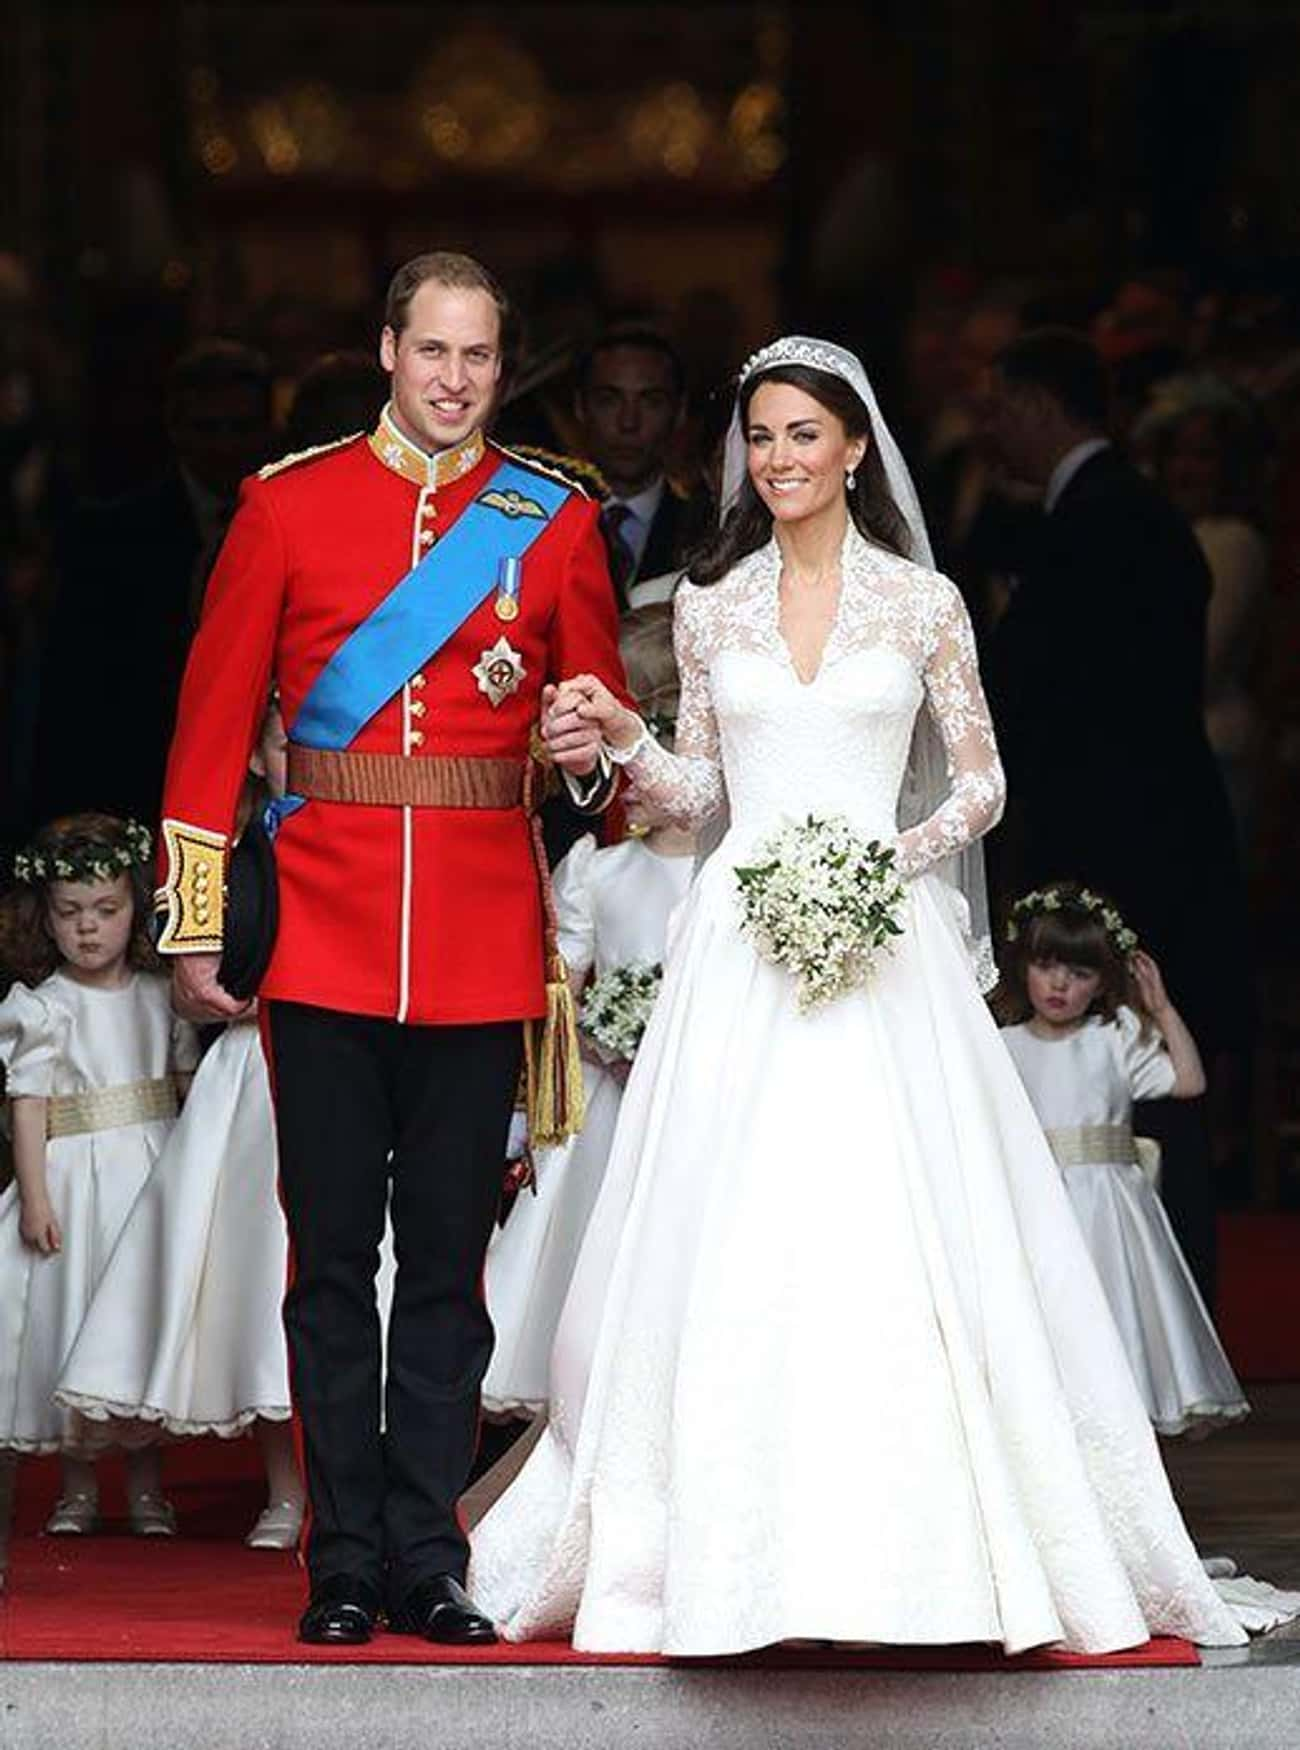 Prince William And Kate Middle is listed (or ranked) 2 on the list 29 First-Dance Songs Celebs Played At Their Weddings